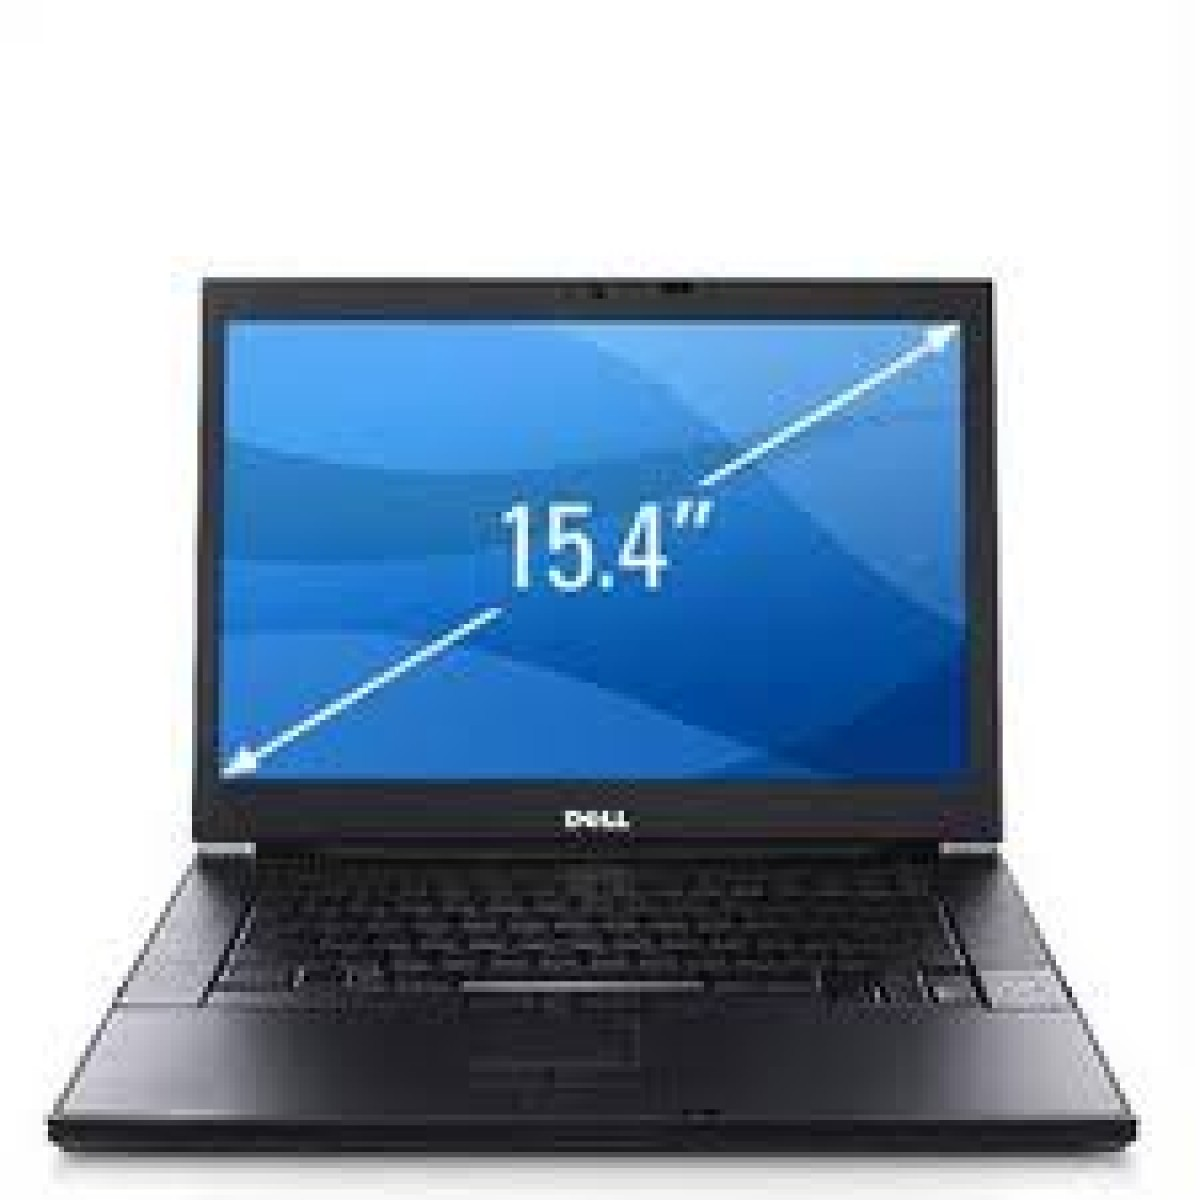 Dell Latitude E6500, 15.4inch Screen, Windows 7, Webcam and free Laptop Bag